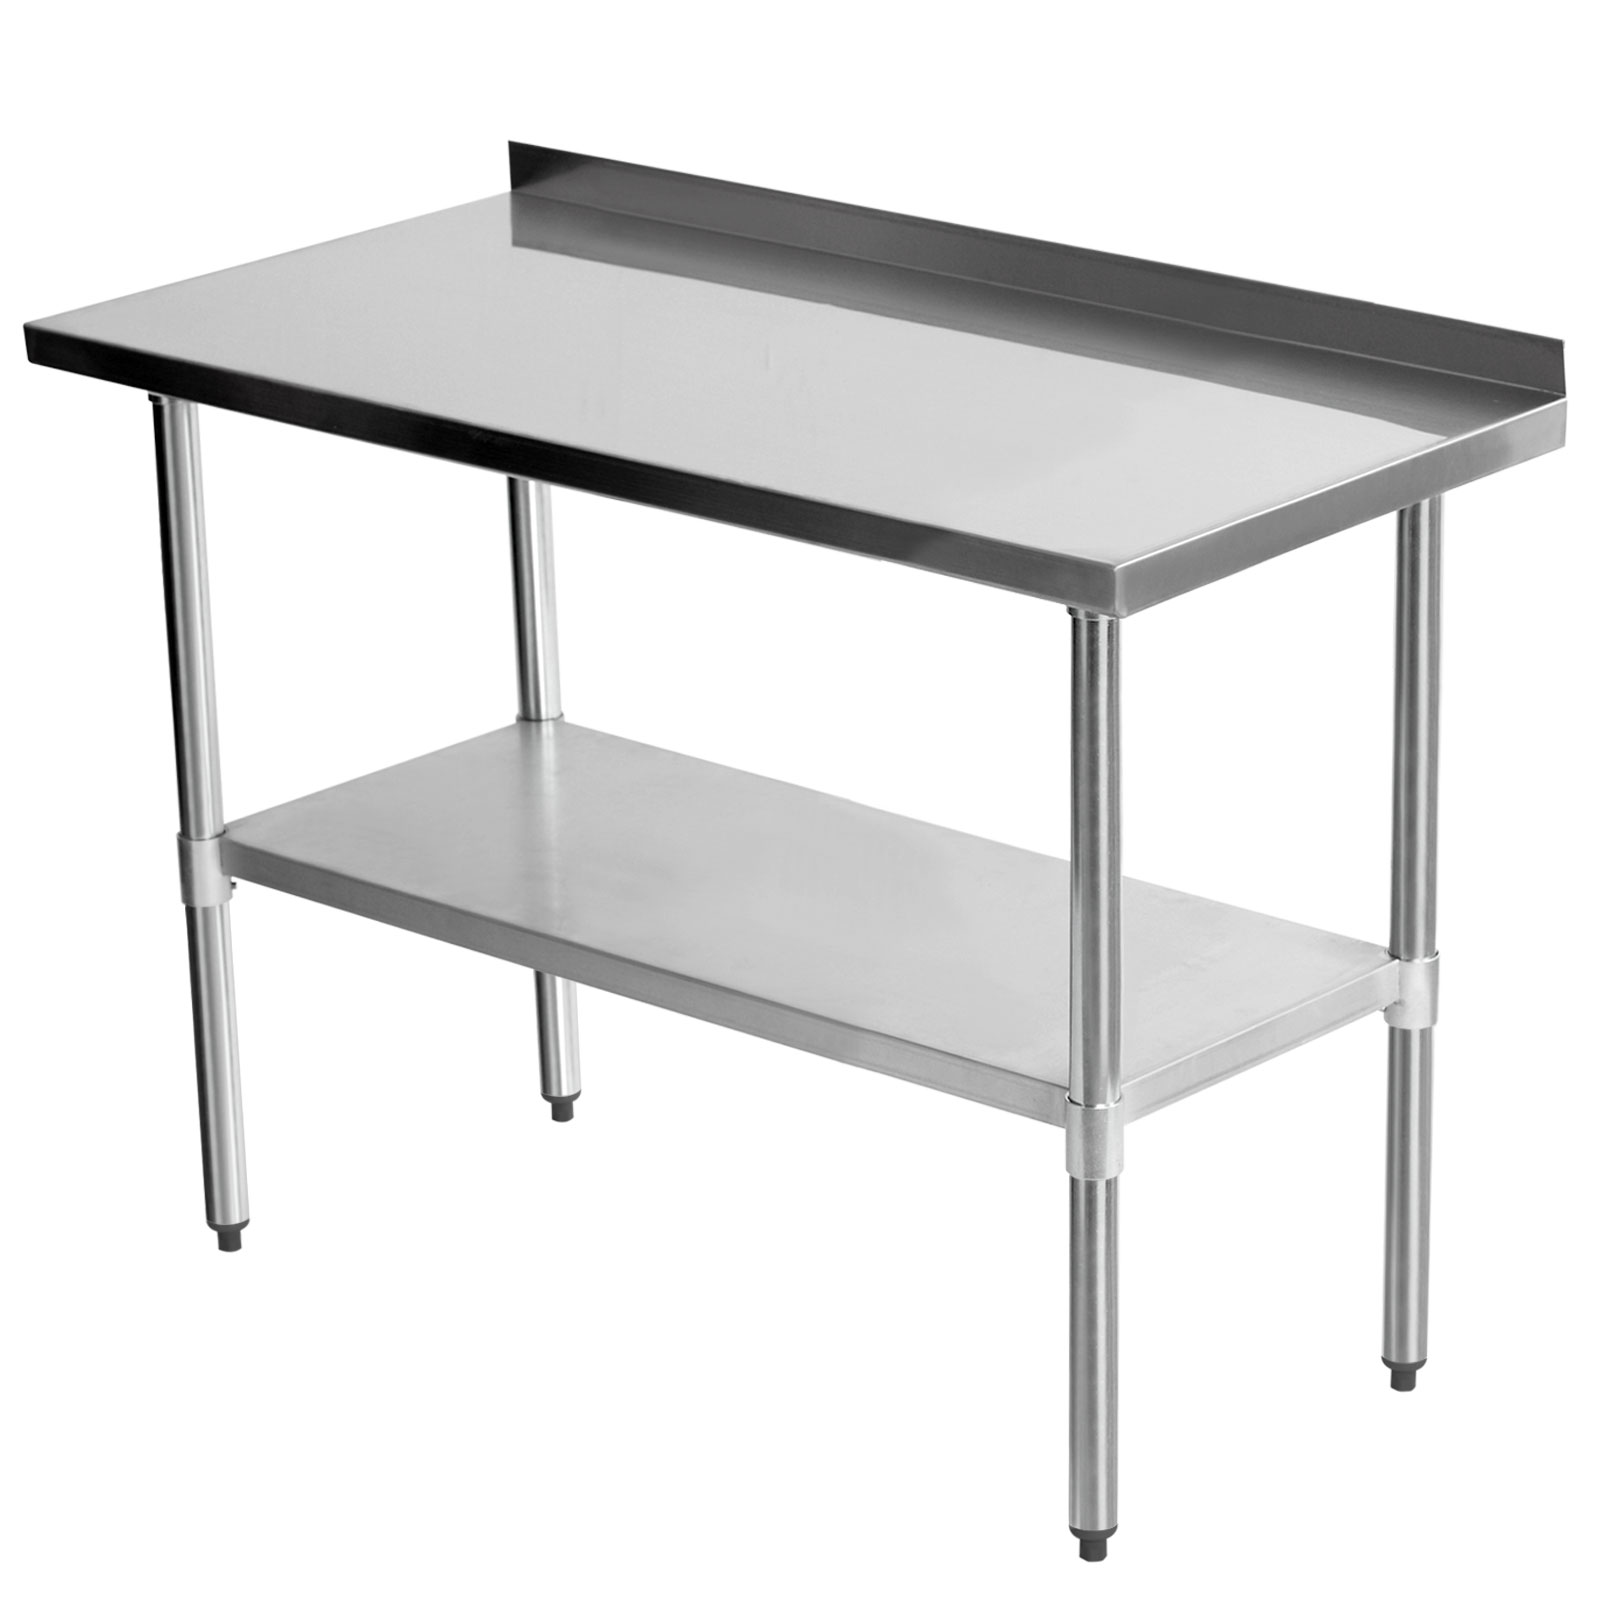 3ftx2ft commercial stainless steel work bench catering